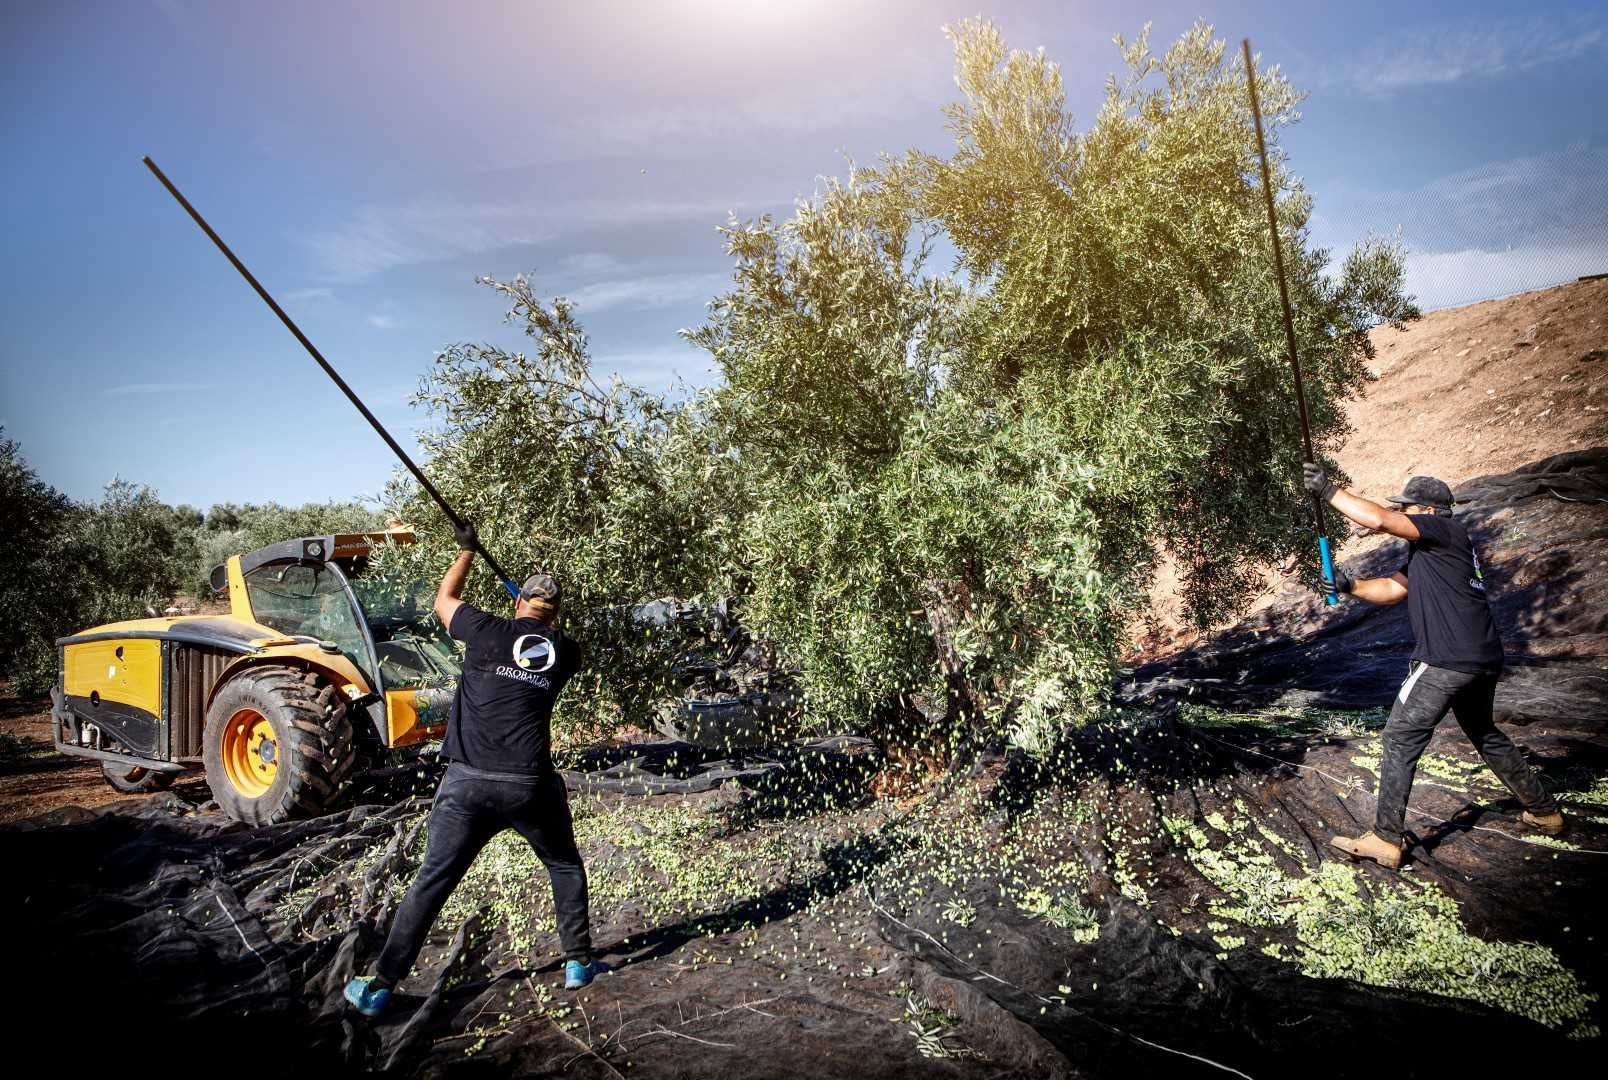 europe-competitions-the-best-olive-oils-andalusian-producers-overcome-obstacles-to-triumph-at-2021-nyiooc-olive-oil-times